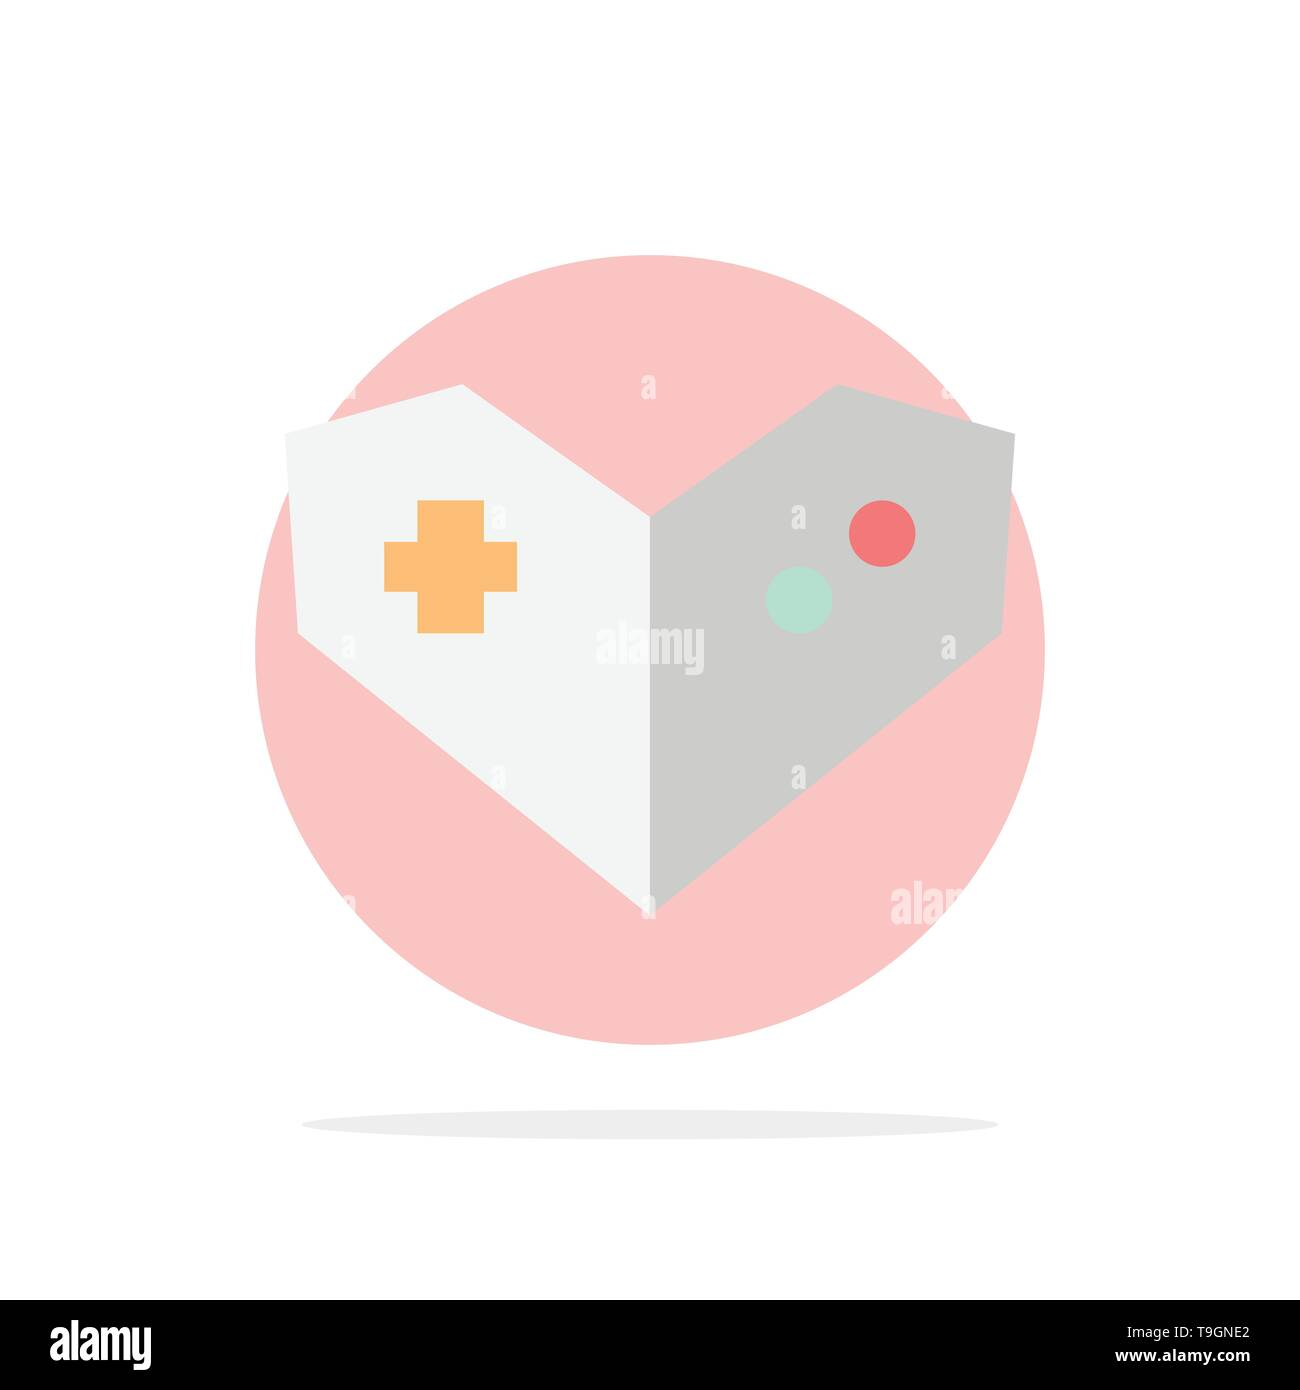 Gamepad, Videogame, PlayStation Abstract Circle Background Flat color Icon - Stock Image